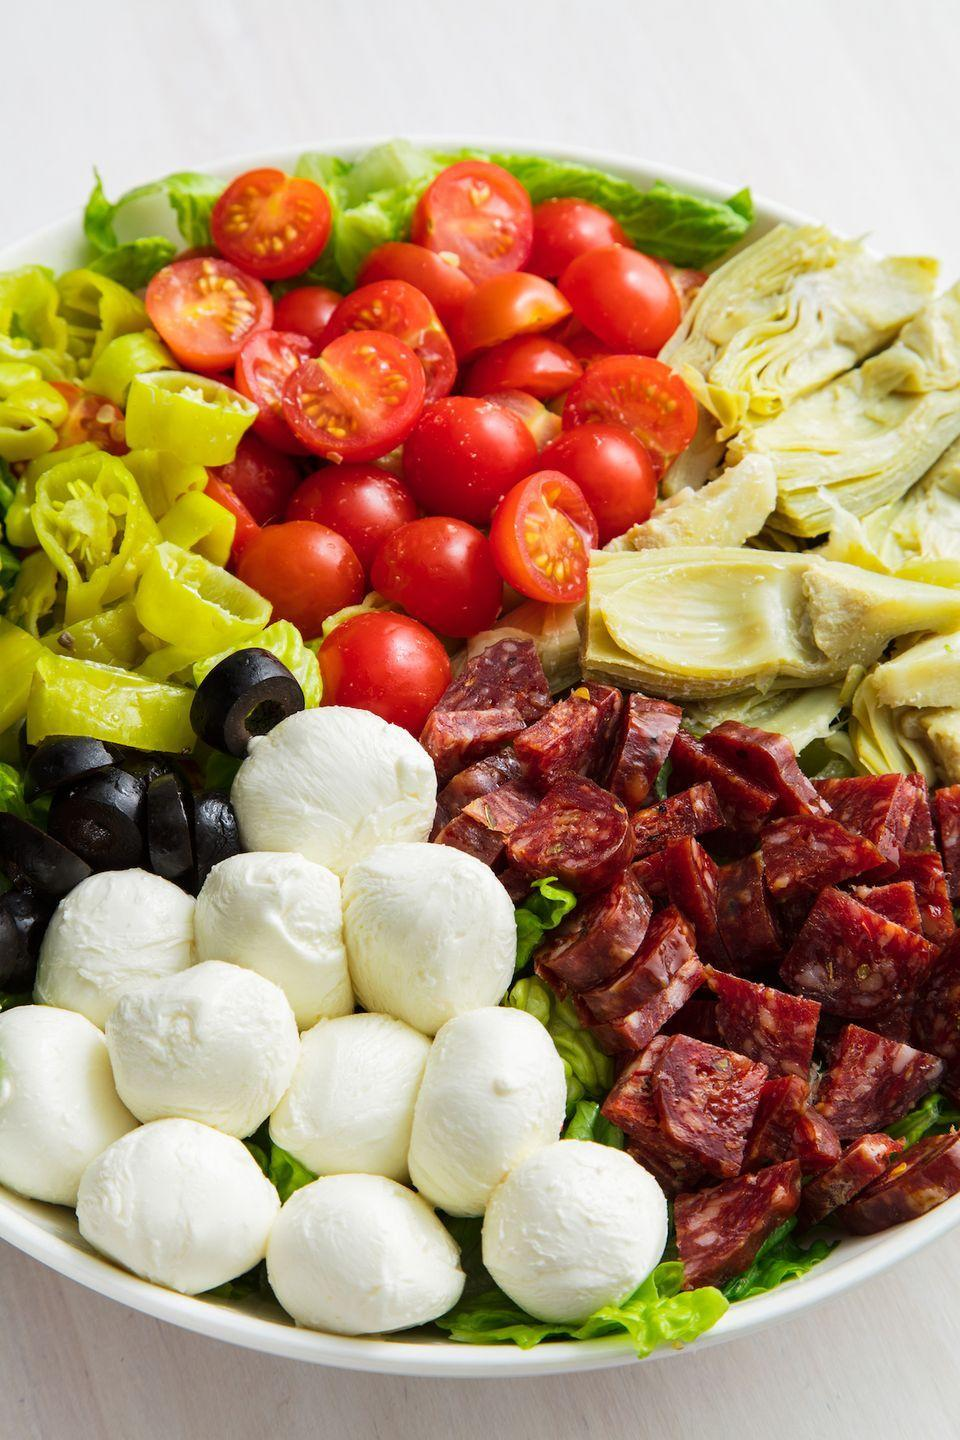 """<p>Gang's all here: tomatoes, artichoke hearts, salami, mozz balls, and pepperoncini make for the best salad EVER.</p><p>Get the recipe from <a href=""""https://www.delish.com/cooking/recipe-ideas/a19885331/antipasto-salad-recipe/"""" rel=""""nofollow noopener"""" target=""""_blank"""" data-ylk=""""slk:Delish"""" class=""""link rapid-noclick-resp"""">Delish</a>. </p>"""